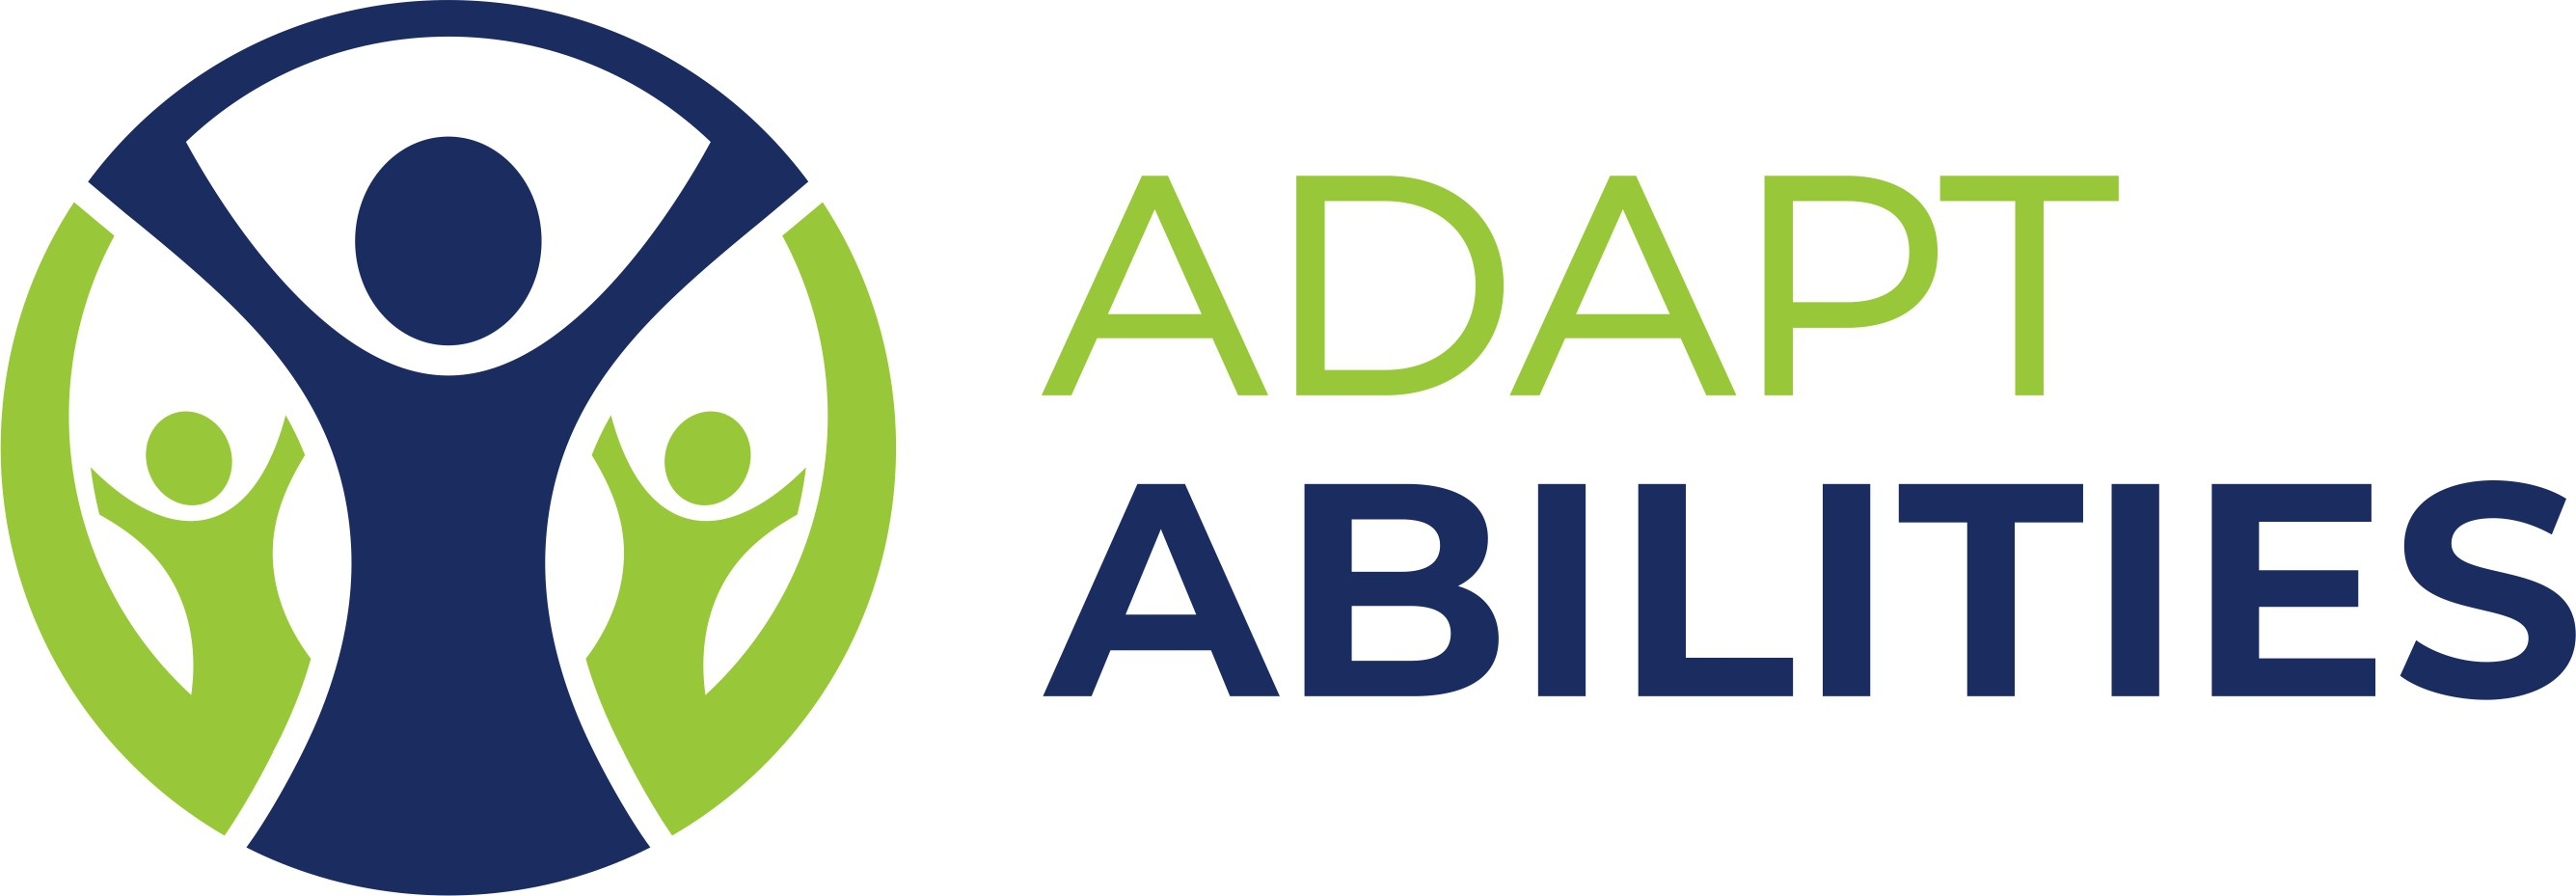 Logo Design for Special Needs Adaptive Technology and Equipment Start-Up